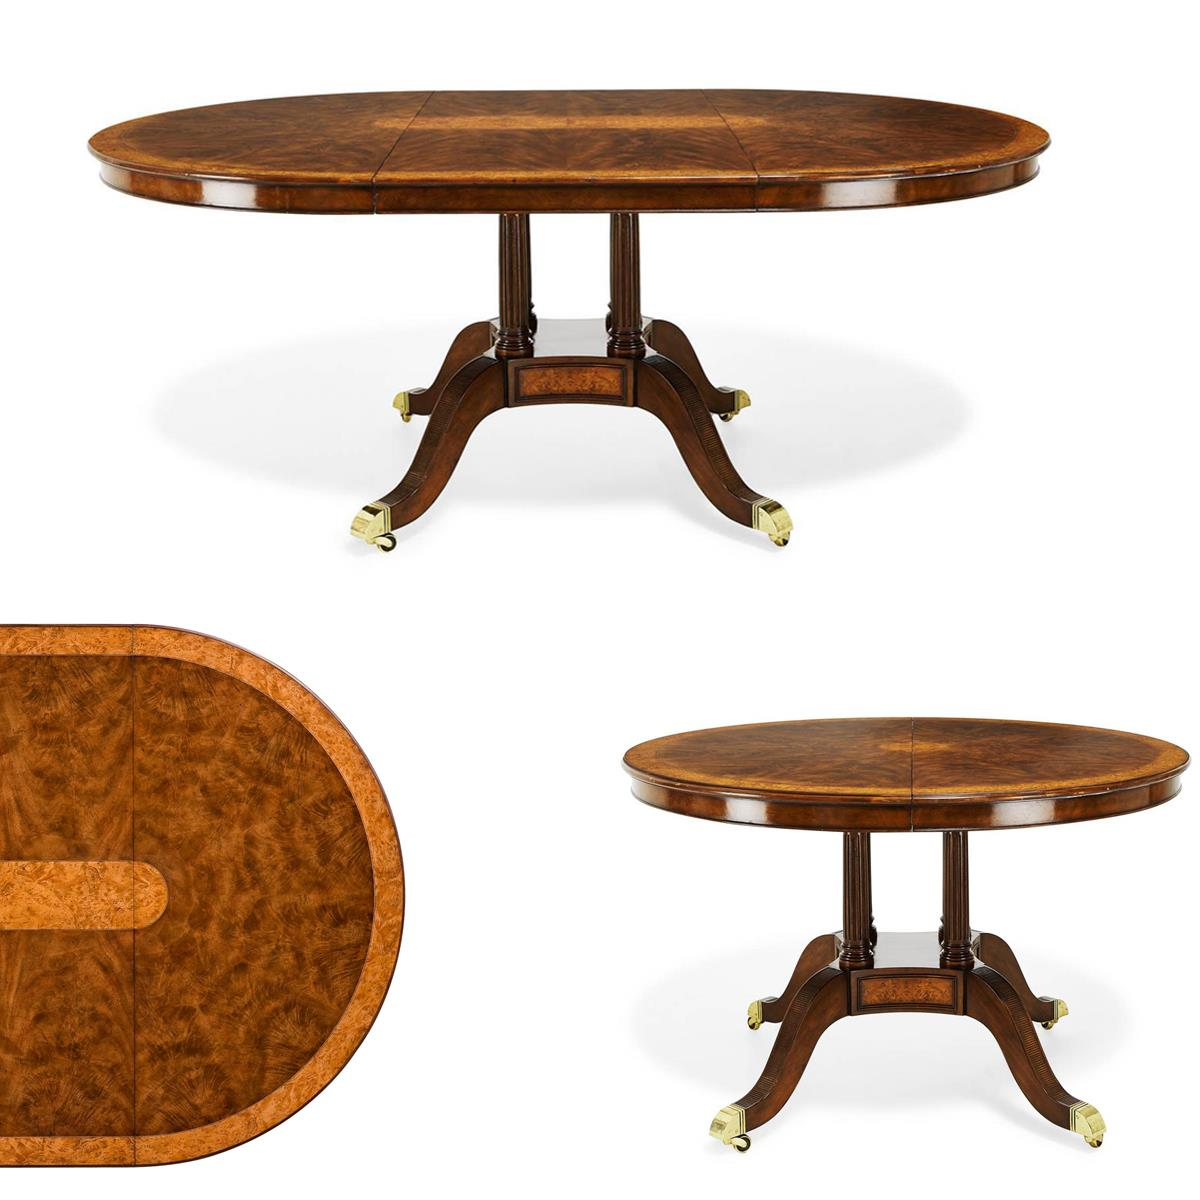 48 Inch Round To Oval Walnut Dining Table And Leaf Opens To 72 Inches